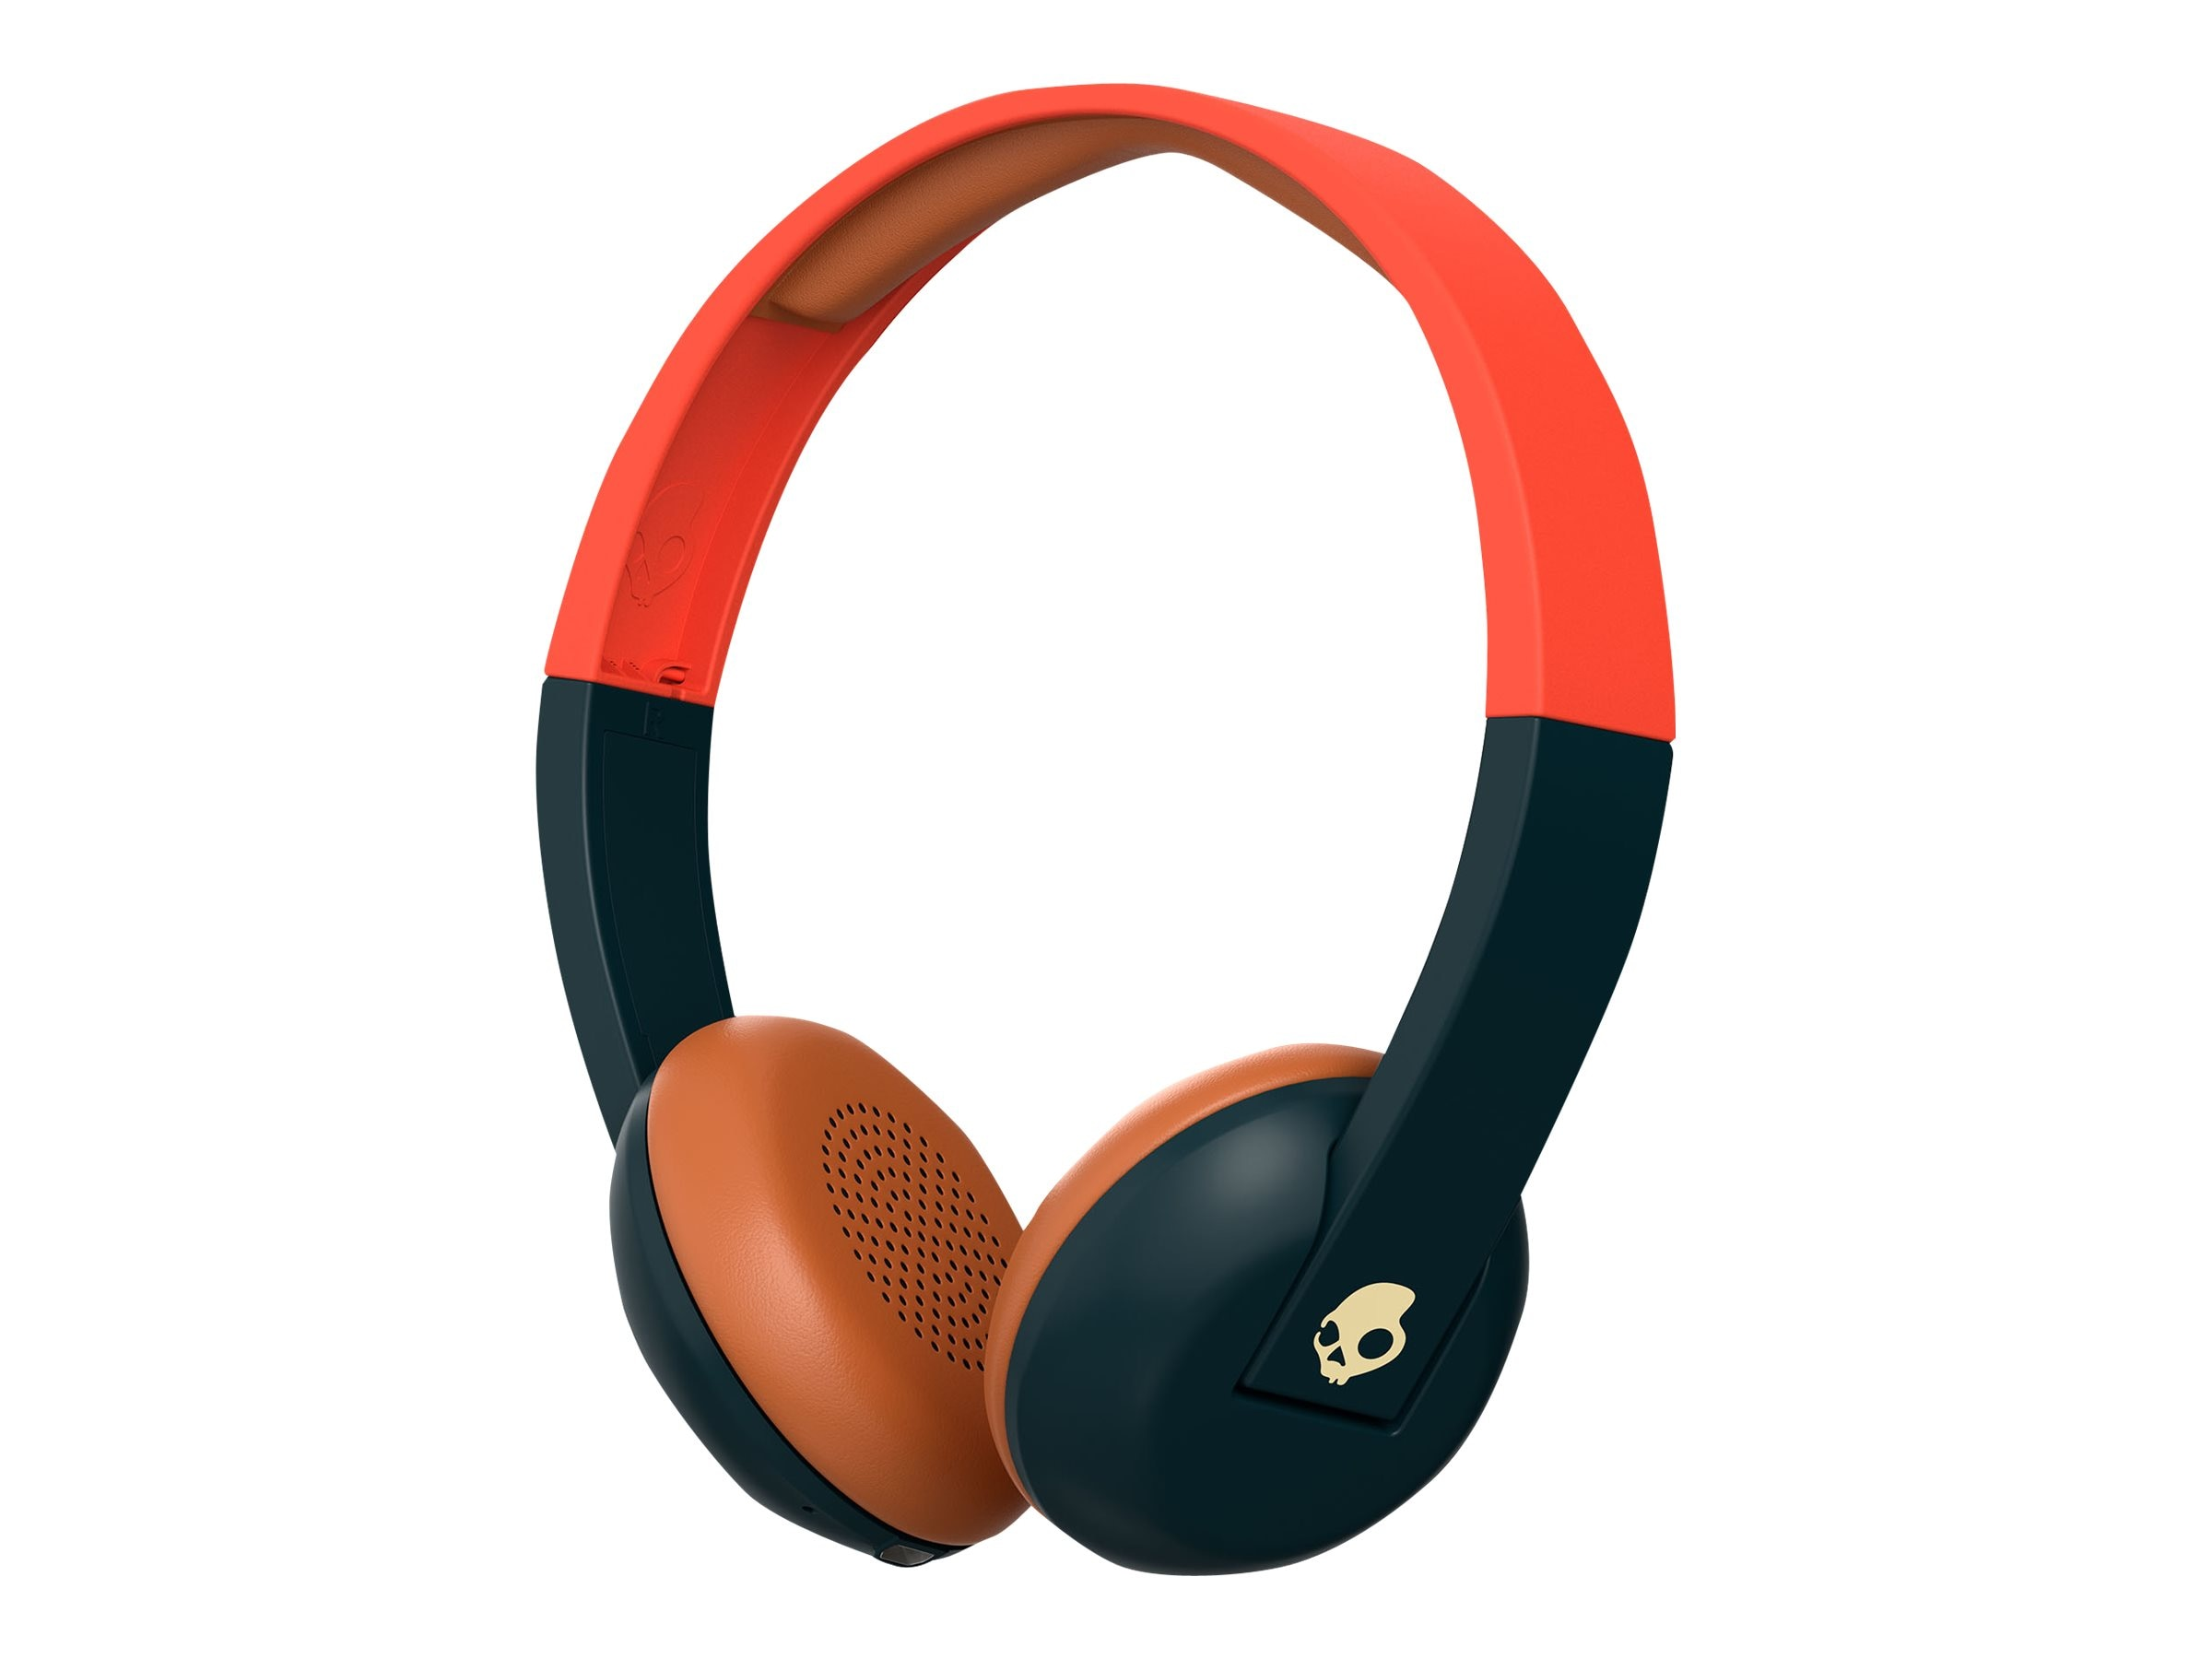 Skullcandy Uproar BT Headphones - Explore Evergreen, S5URHW-510